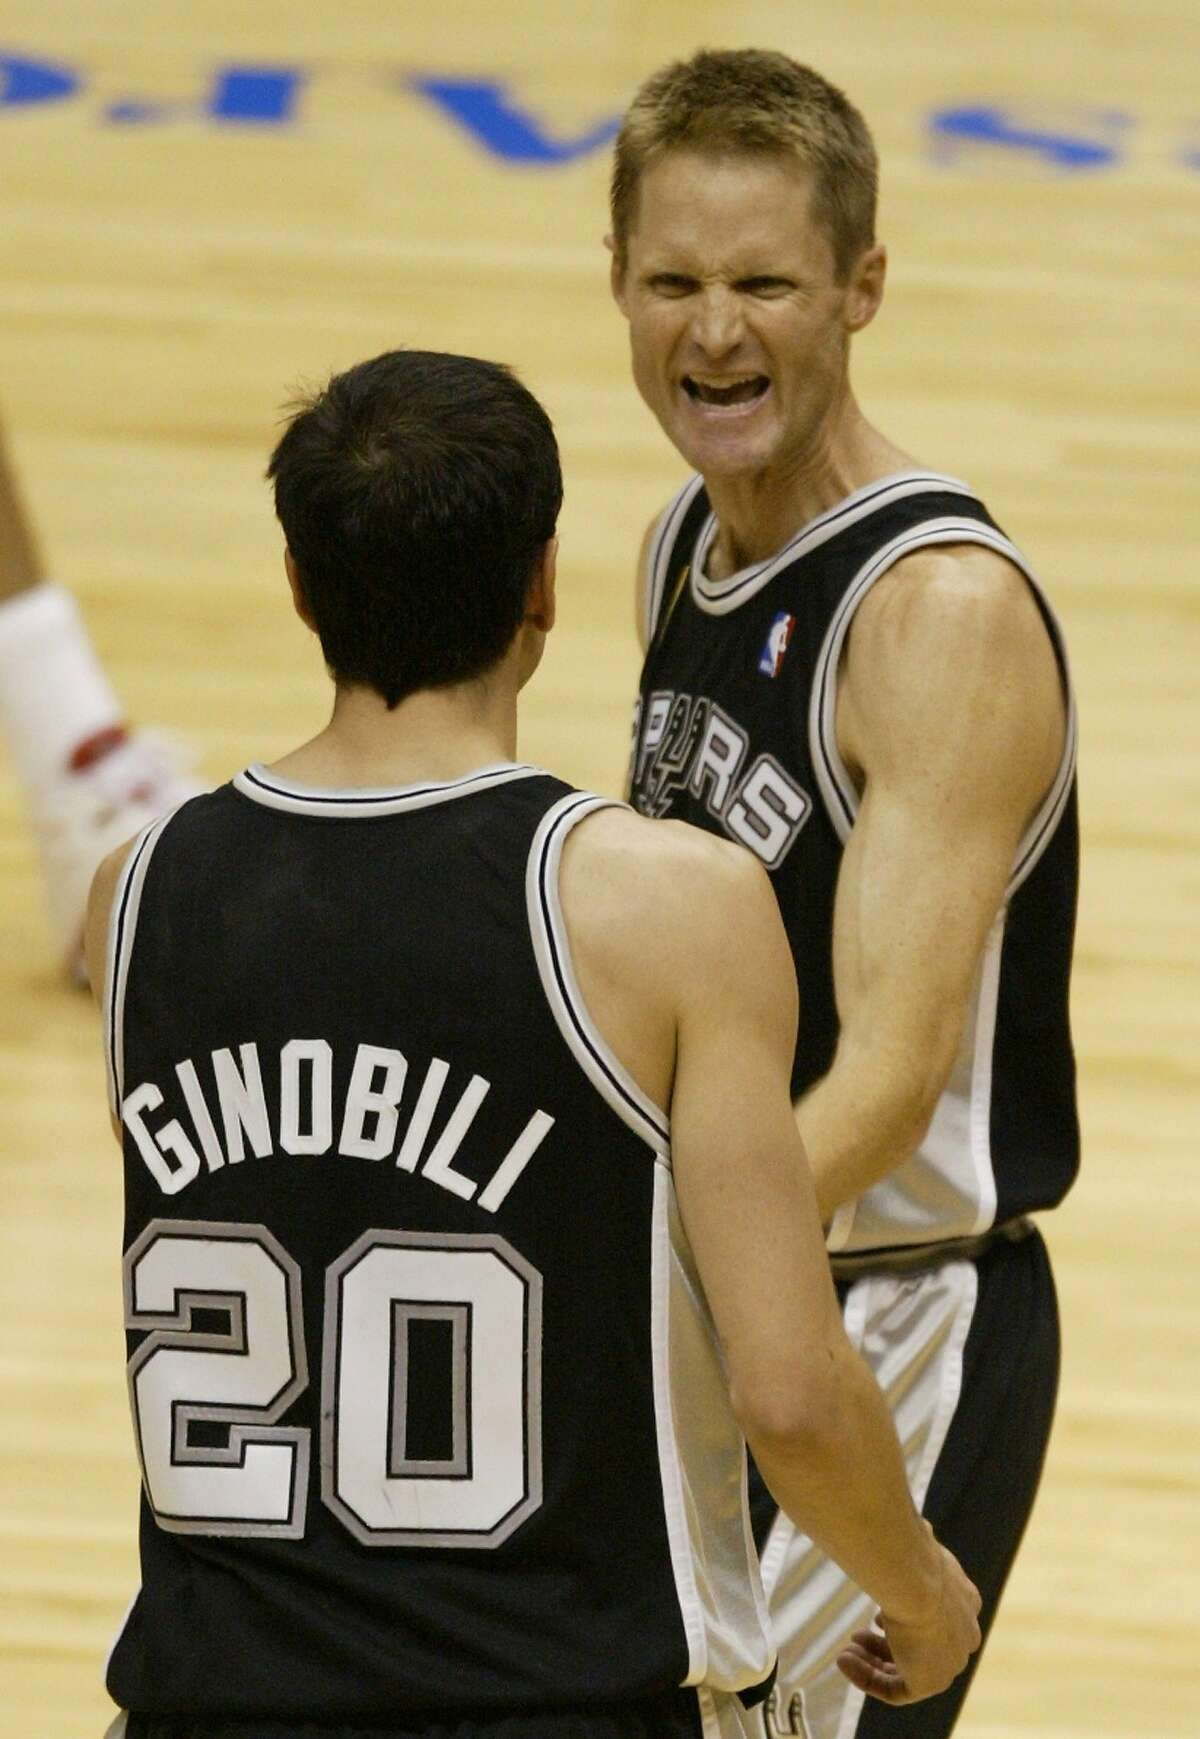 San Antonio Spurs' Steve Kerr is congratulated by teammate Emanuel Ginobili after Kerr shot a three-pointer against the New Jersey Nets in the second half of game 5 of the NBA Finals Friday June 13, 2003 in East Rutherford, N.J. The Spurs defeated the Nets 93-83. (AP Photo/Miles Kennedy)